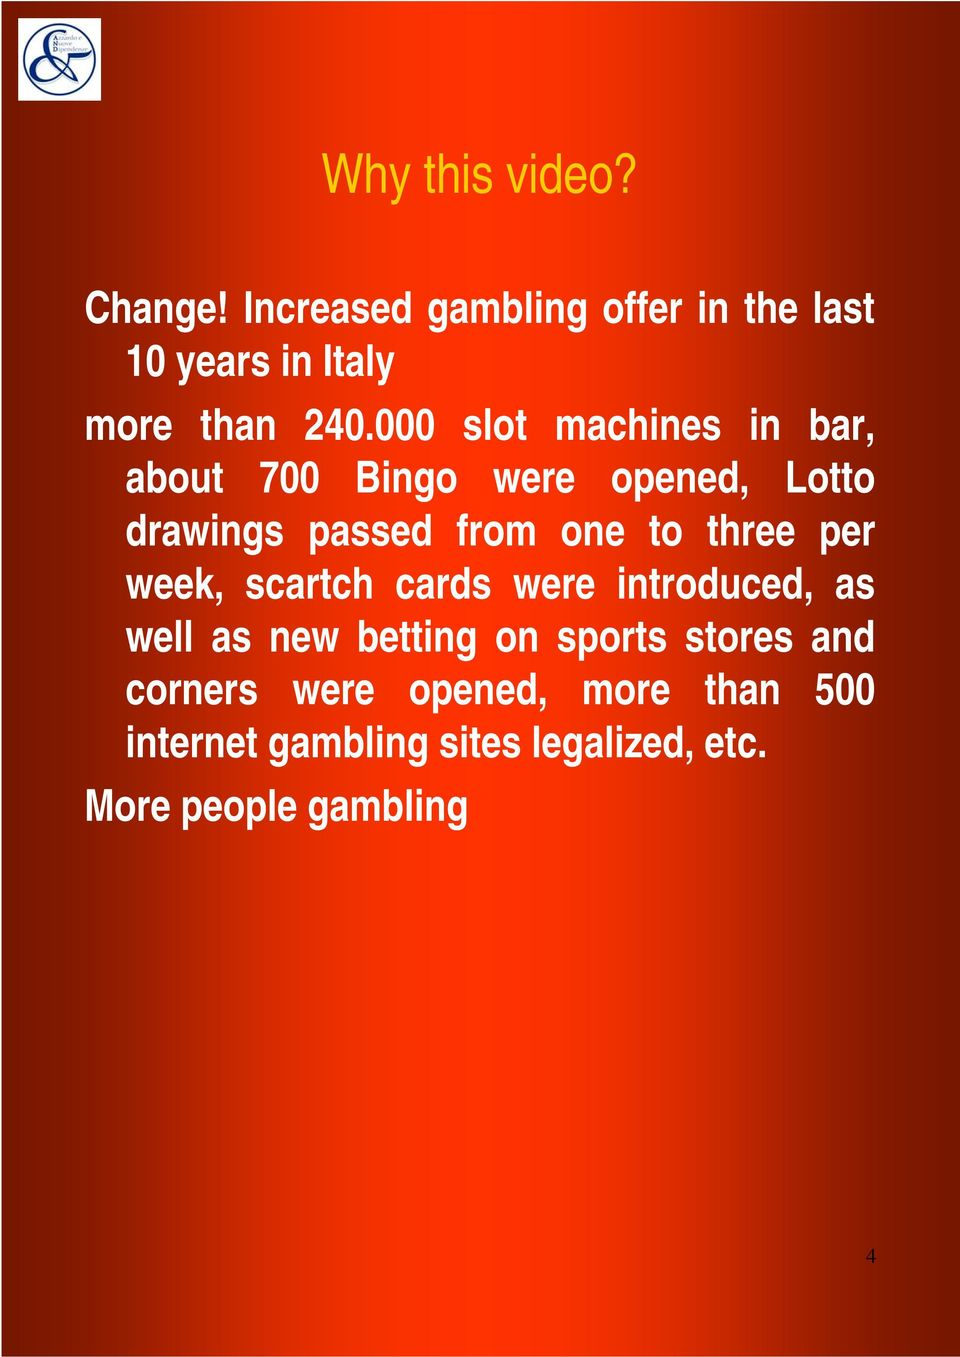 three per week, scartch cards were introduced, as well as new betting on sports stores and